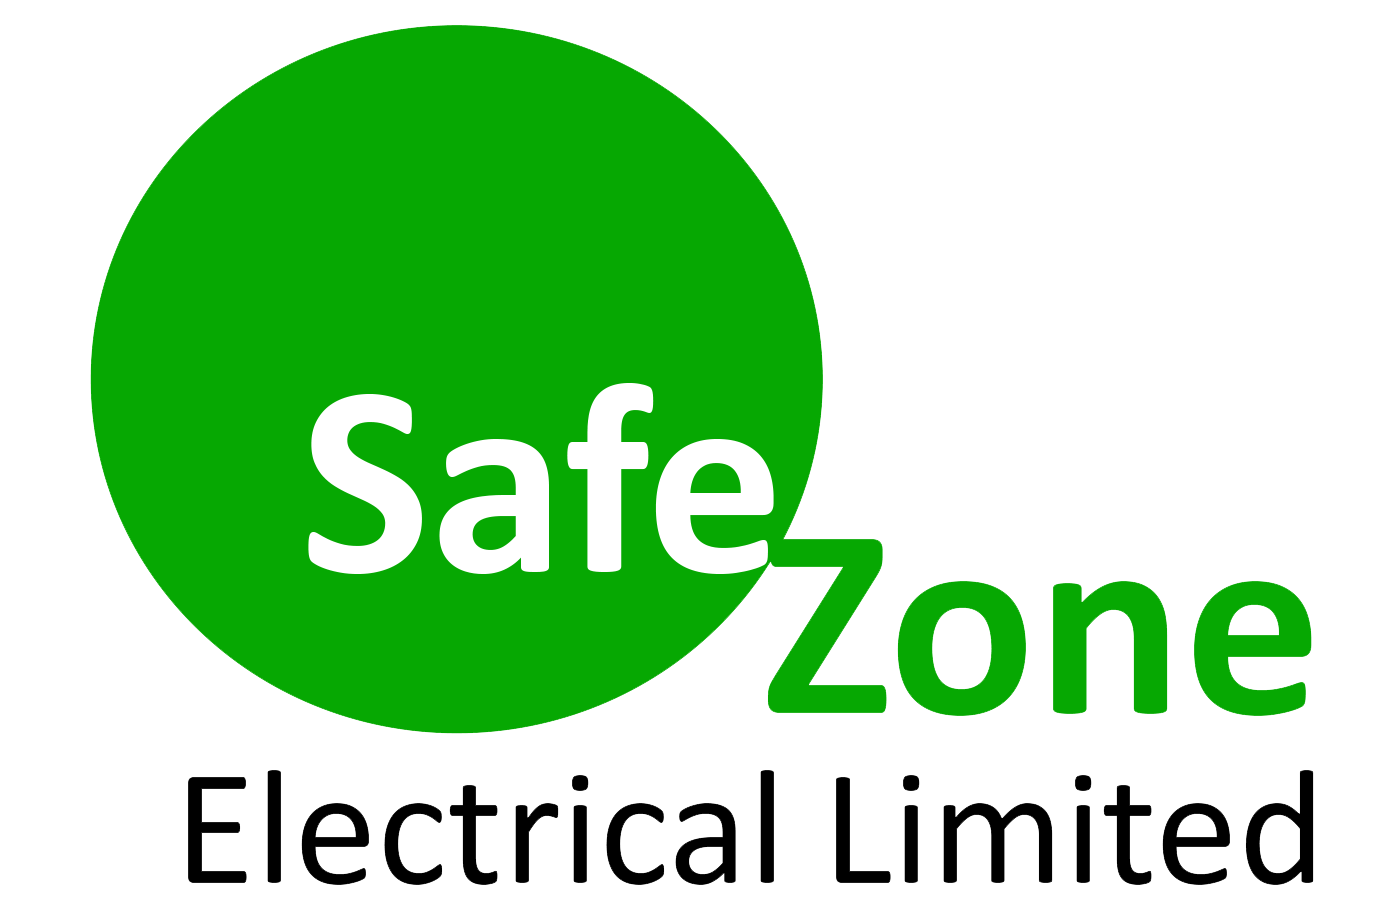 Safezone Electrical